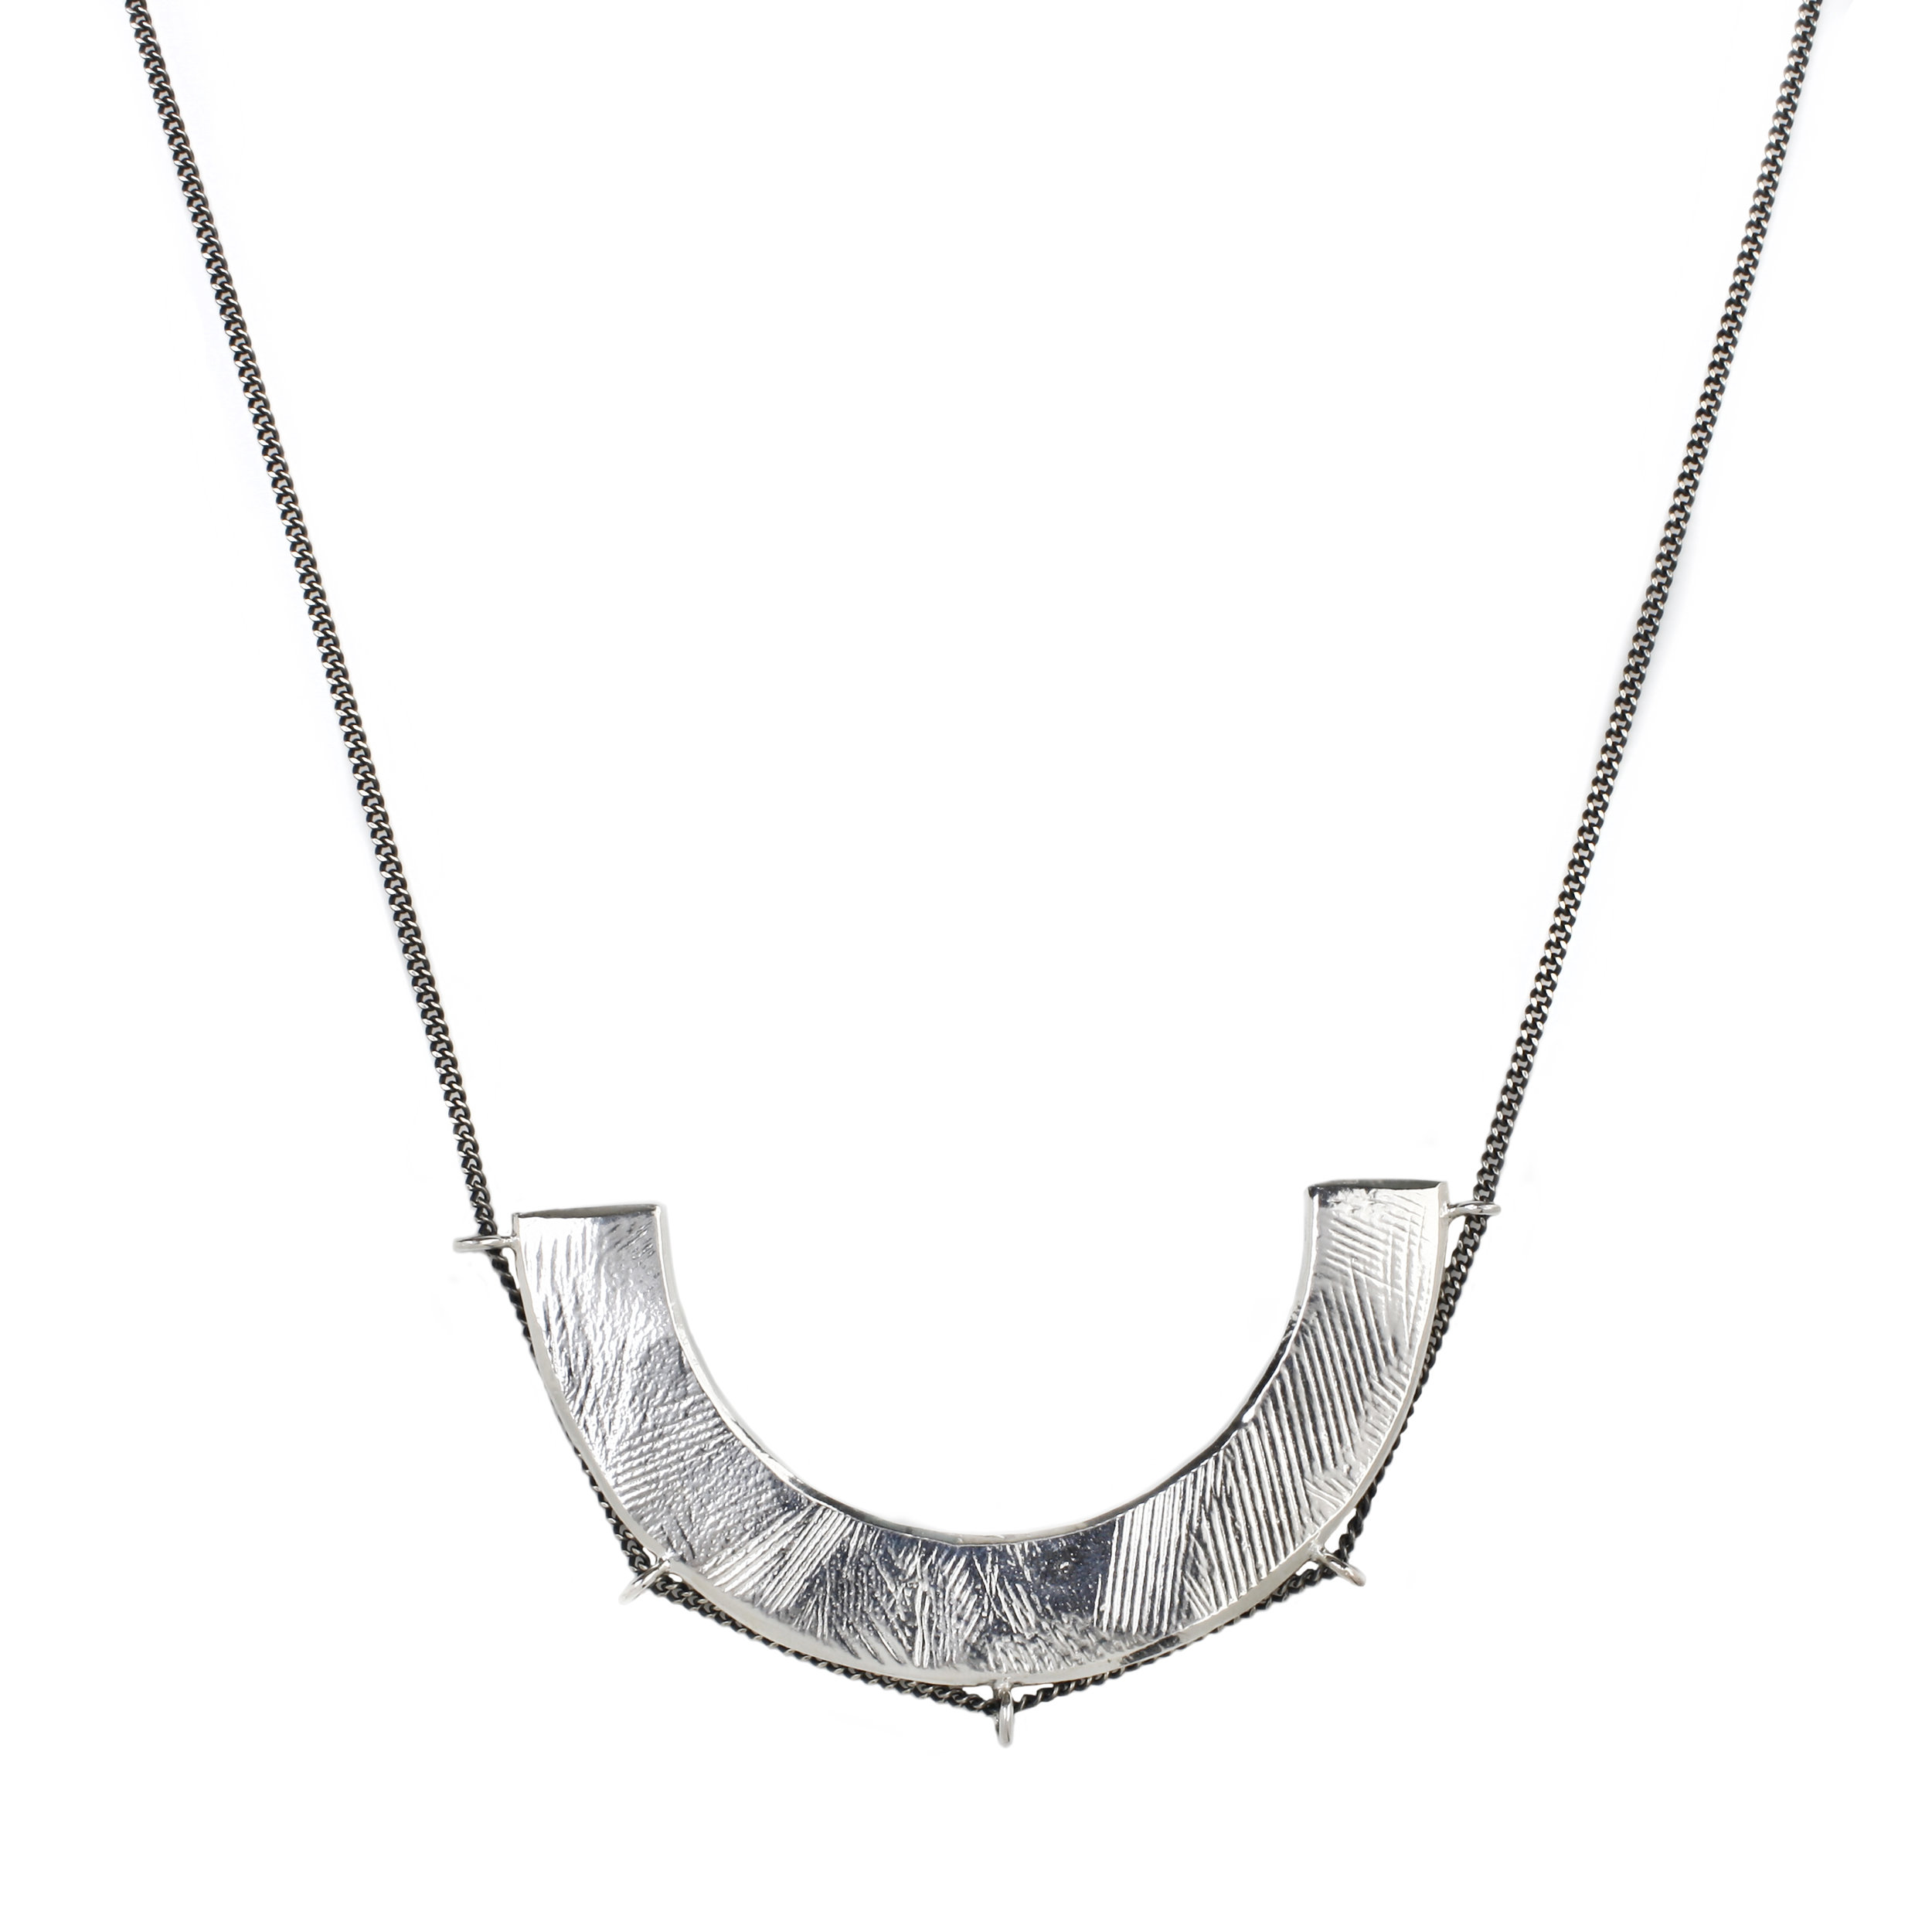 arc necklace.jpg